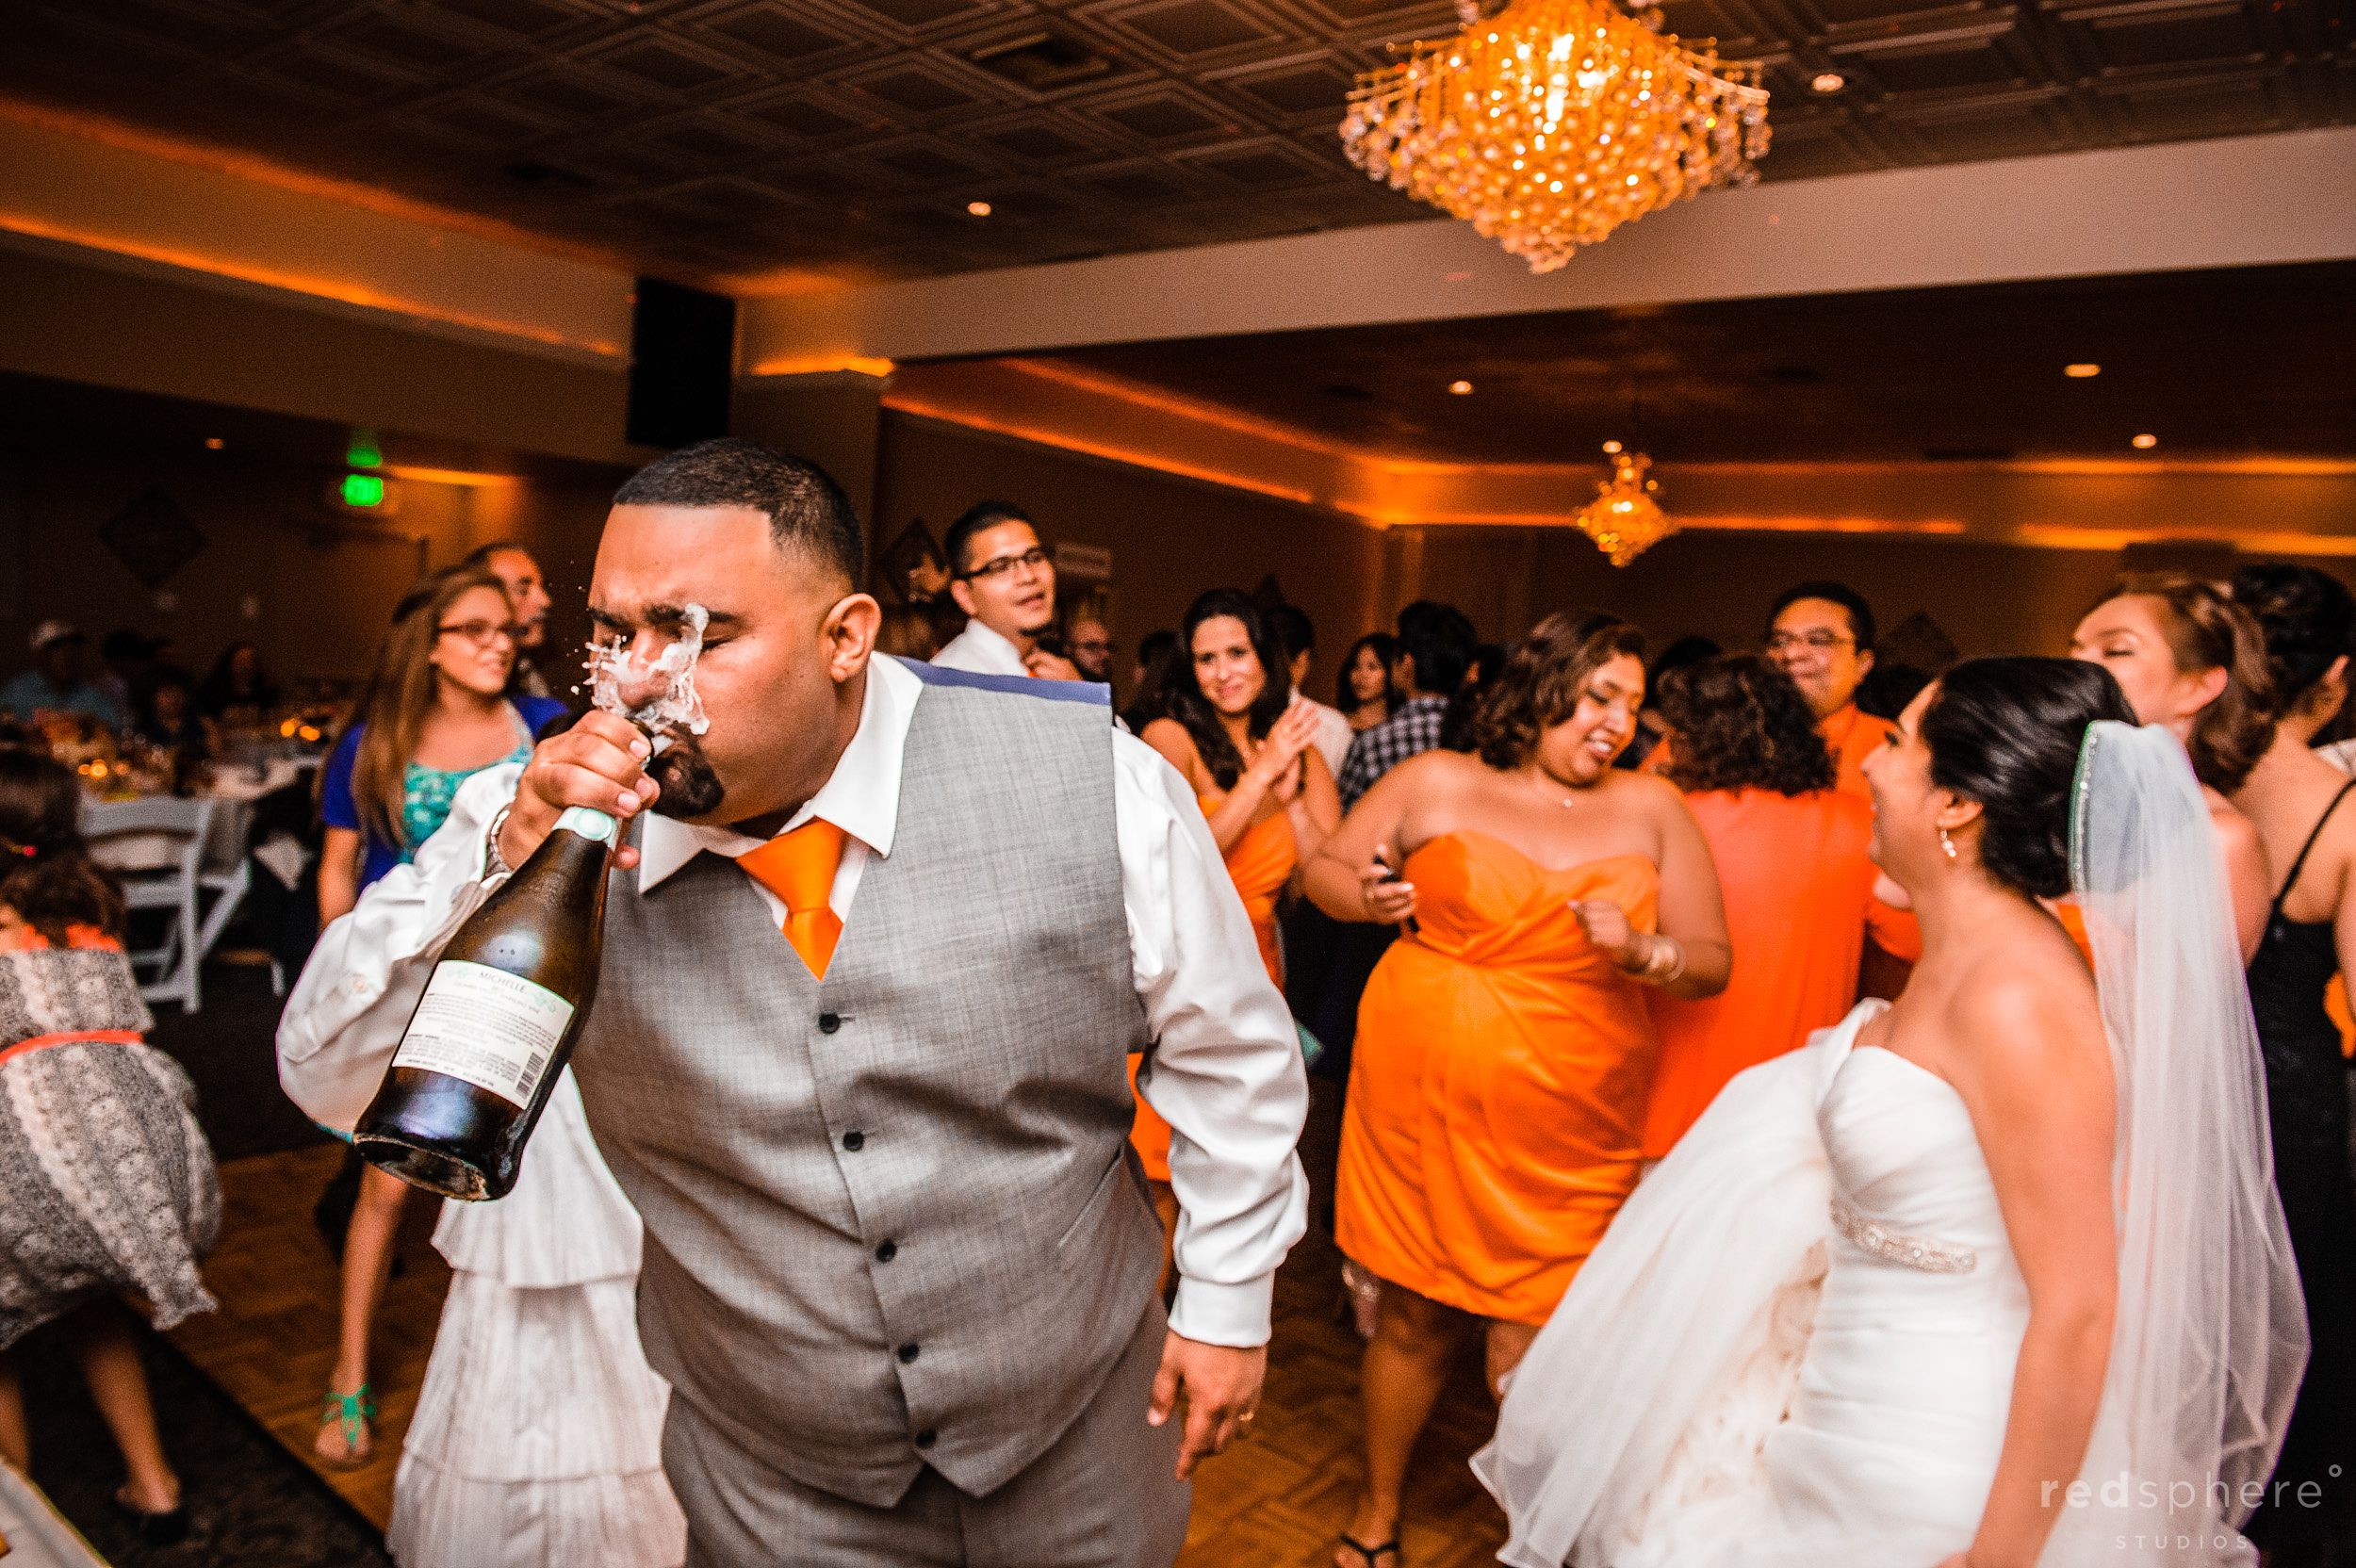 Groom Popping Champagne Bottle With Bride and Bridesmaids